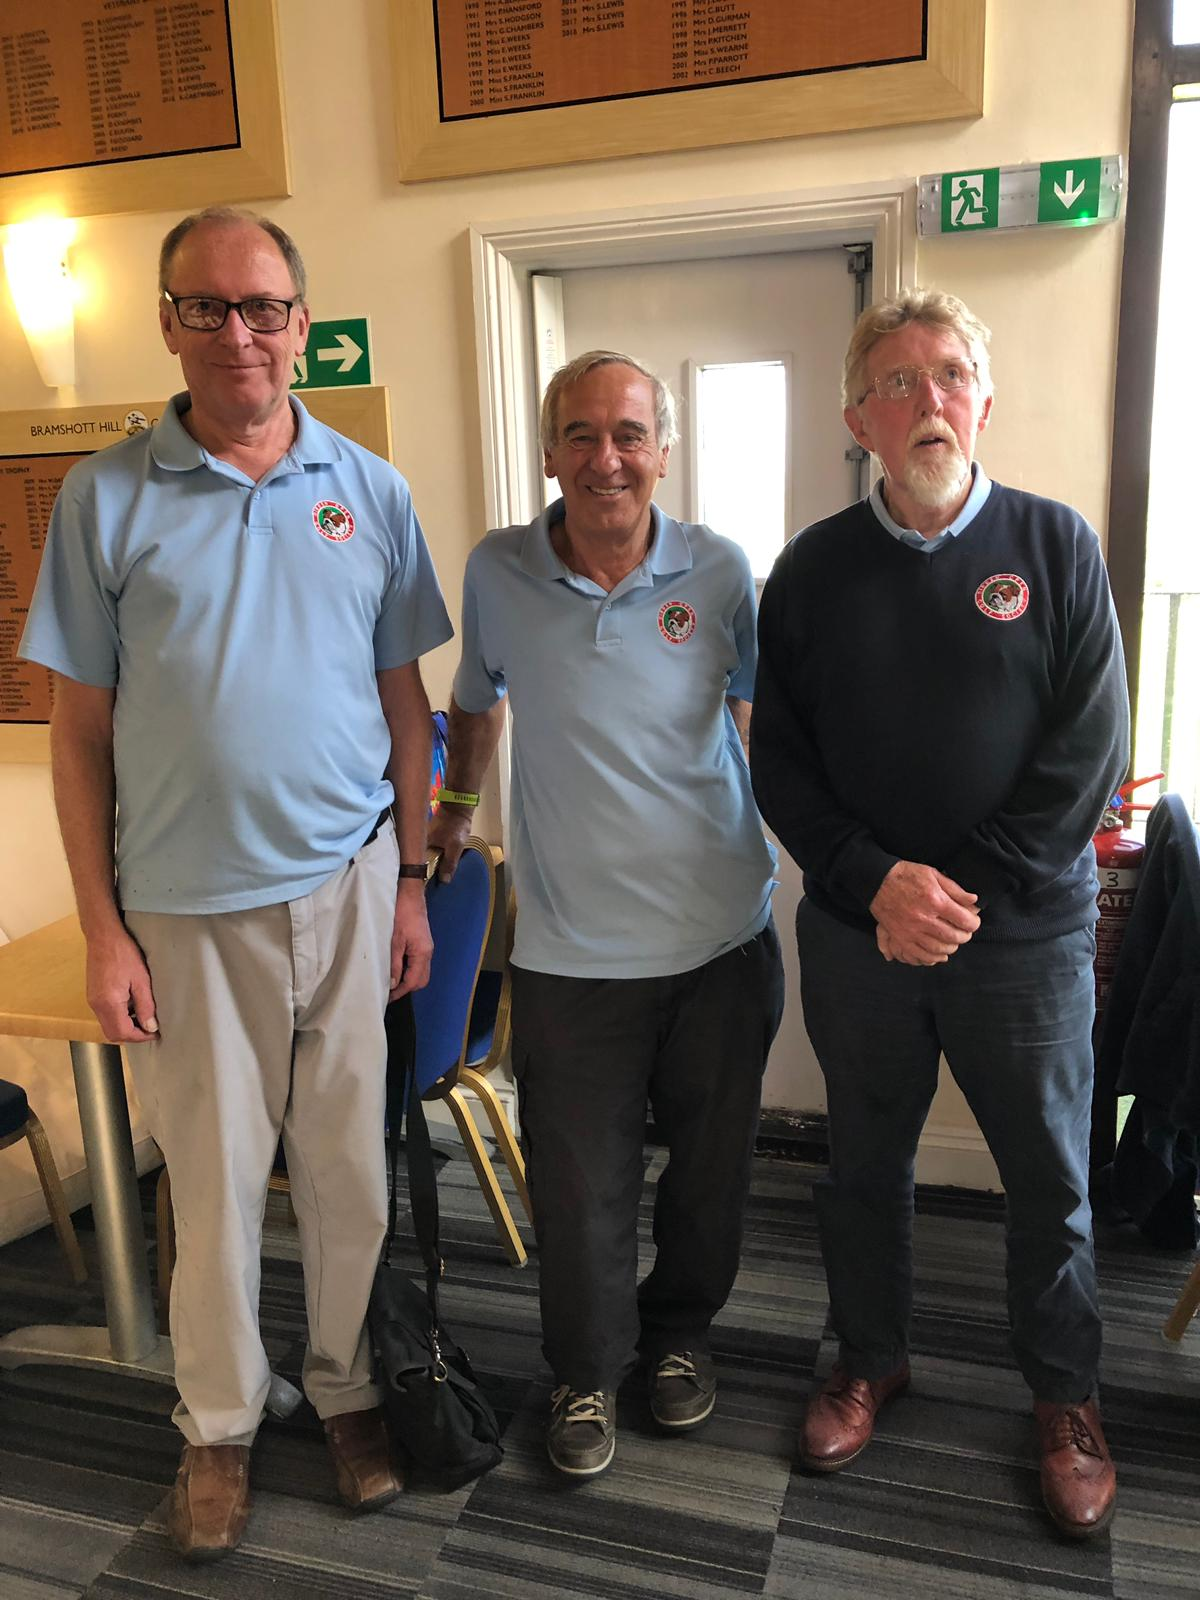 1 Oct:  Stableford-winners-L-to-R-1st-A-Turnpenny-2nd-J-Crumpler-3rd-P-Huxley